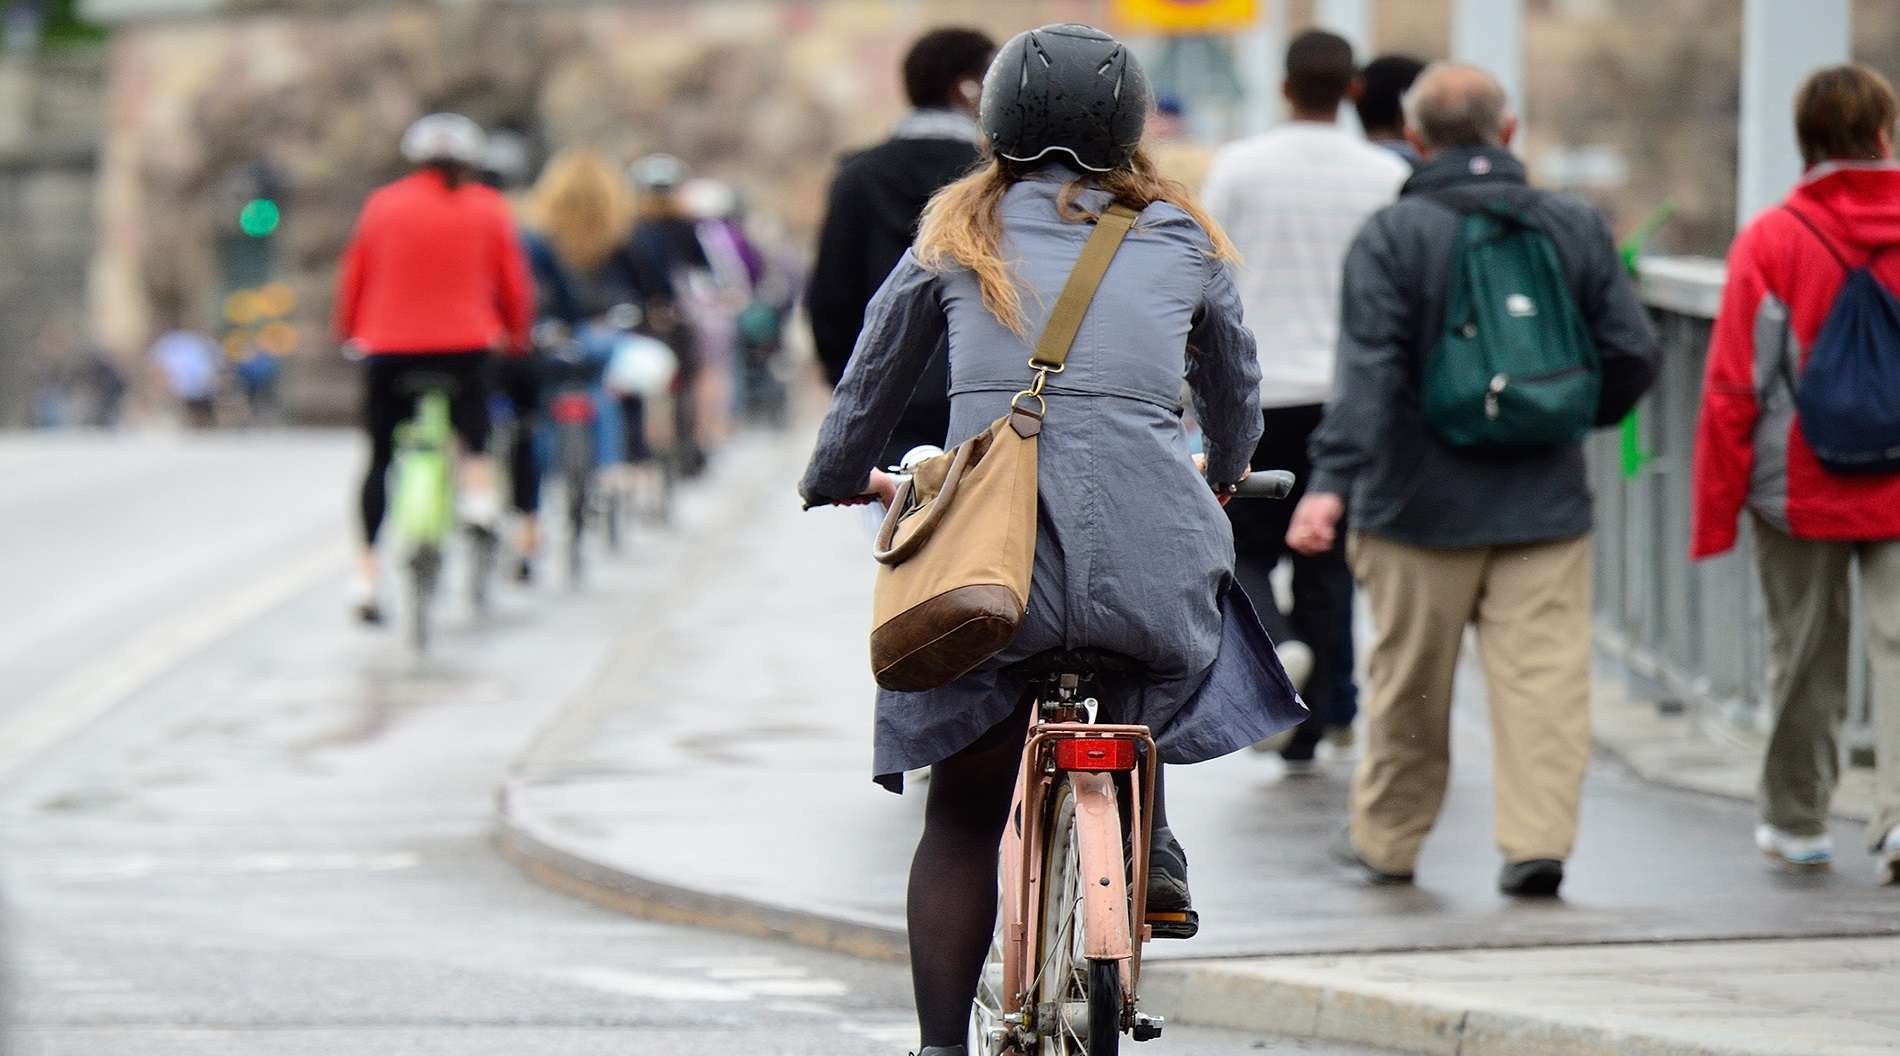 Facilitating the rapid growth of cycling in Dublin